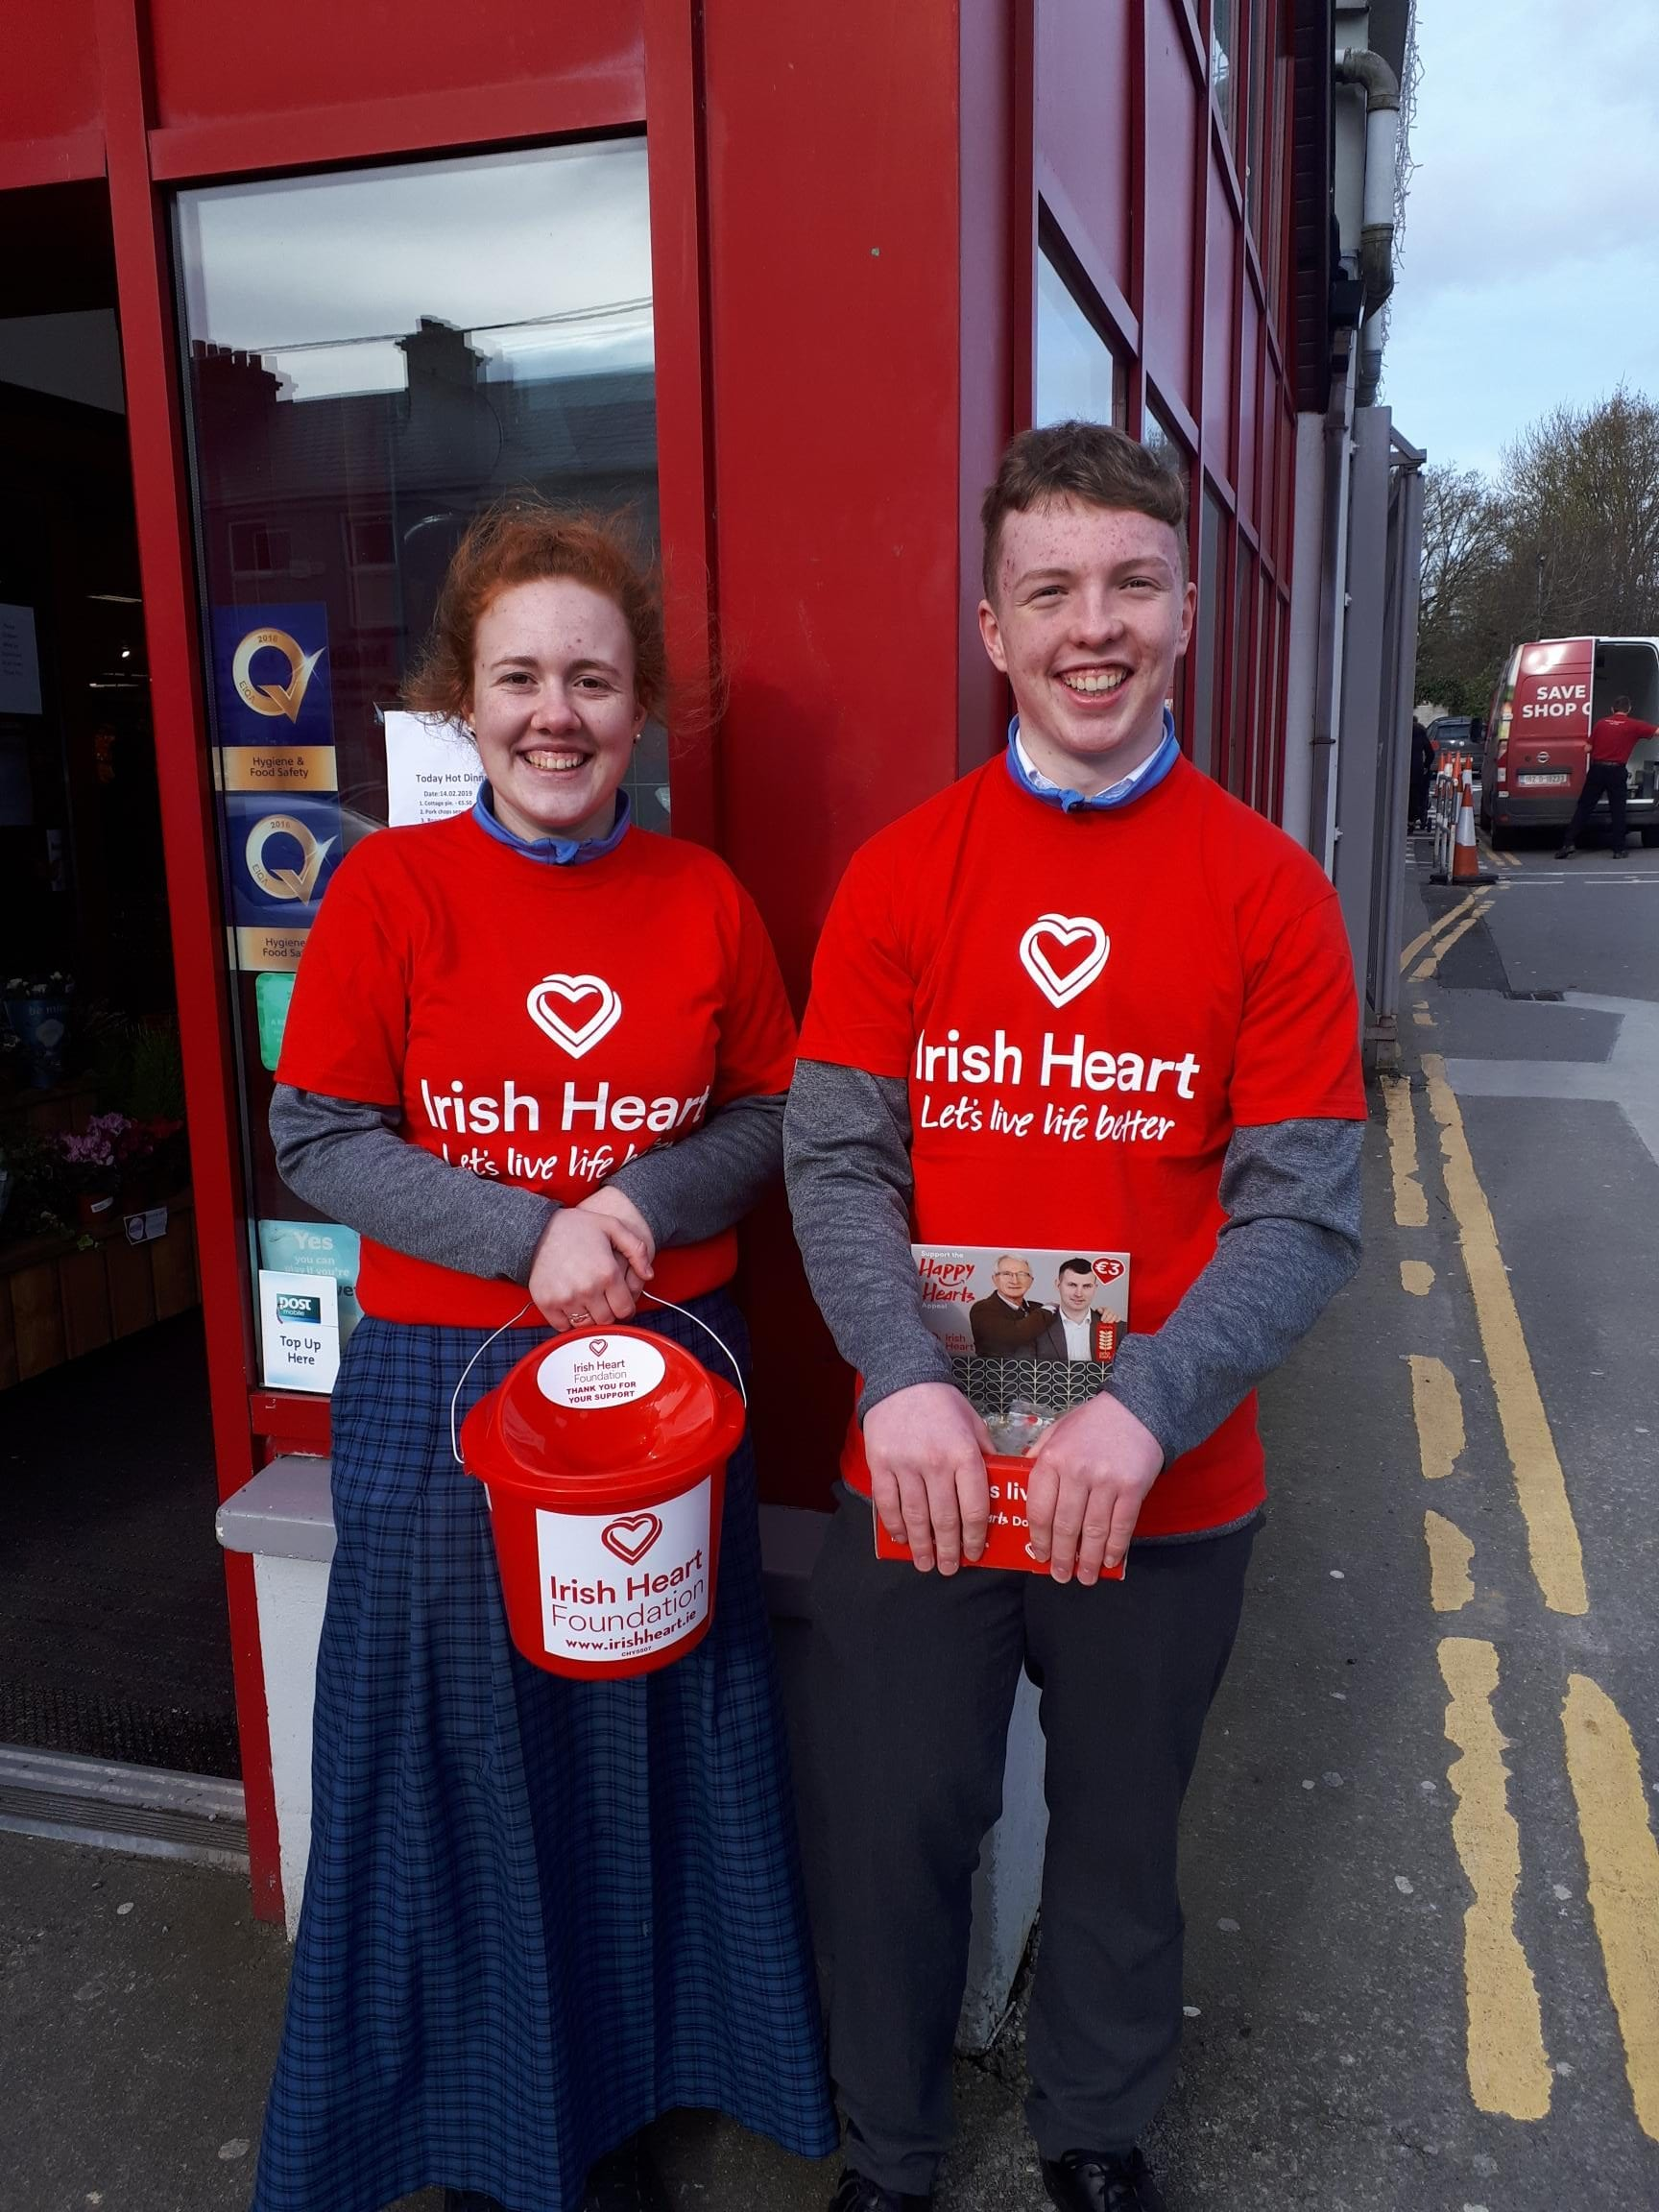 Victoria Brouder and Cormac Browne fundraising for the Irish Heart Foundation